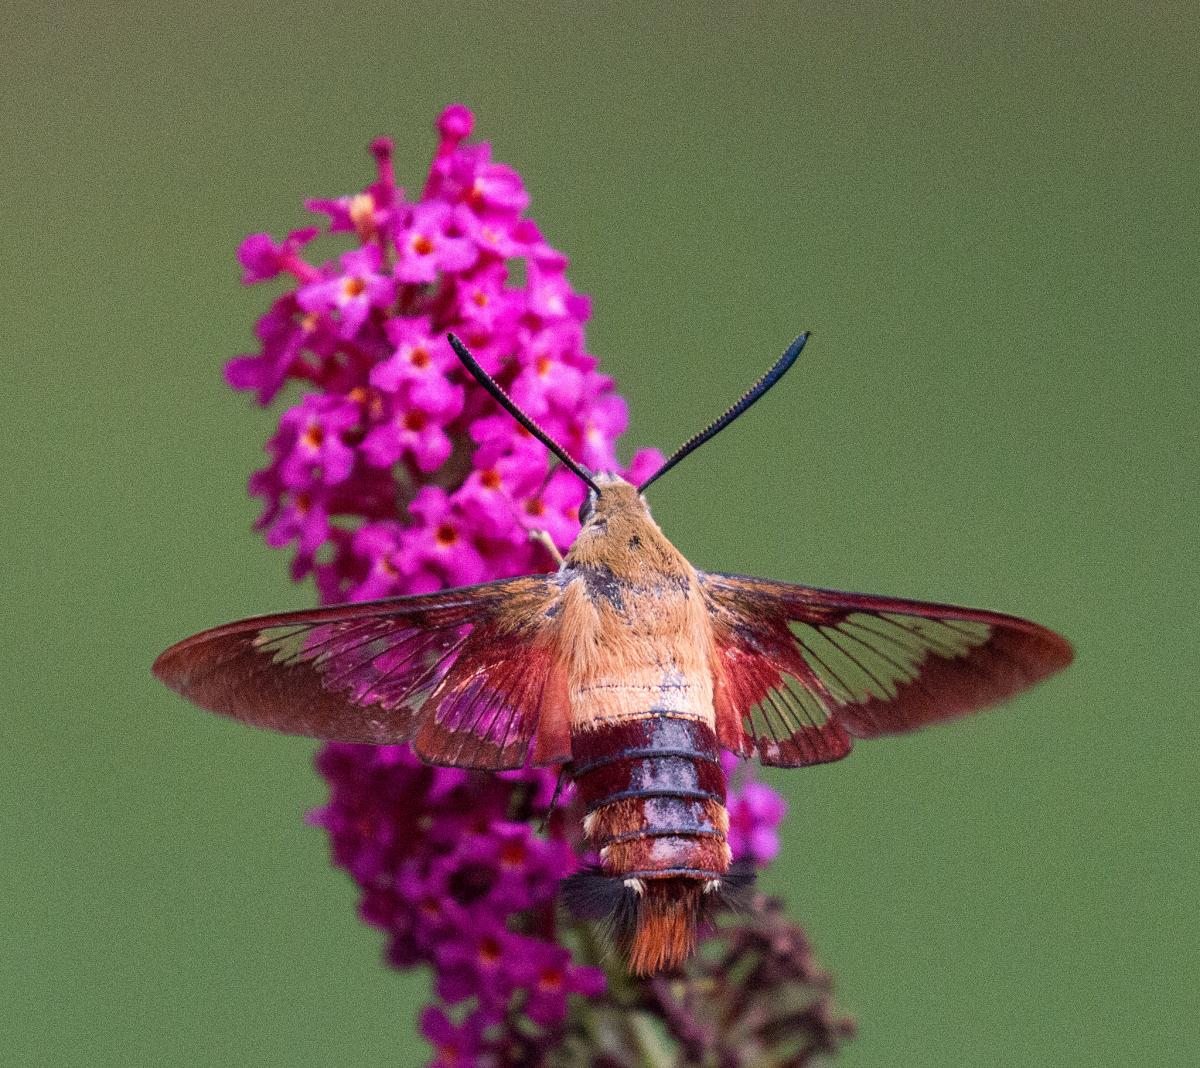 Hummingbird moth pollinating long-necked flower